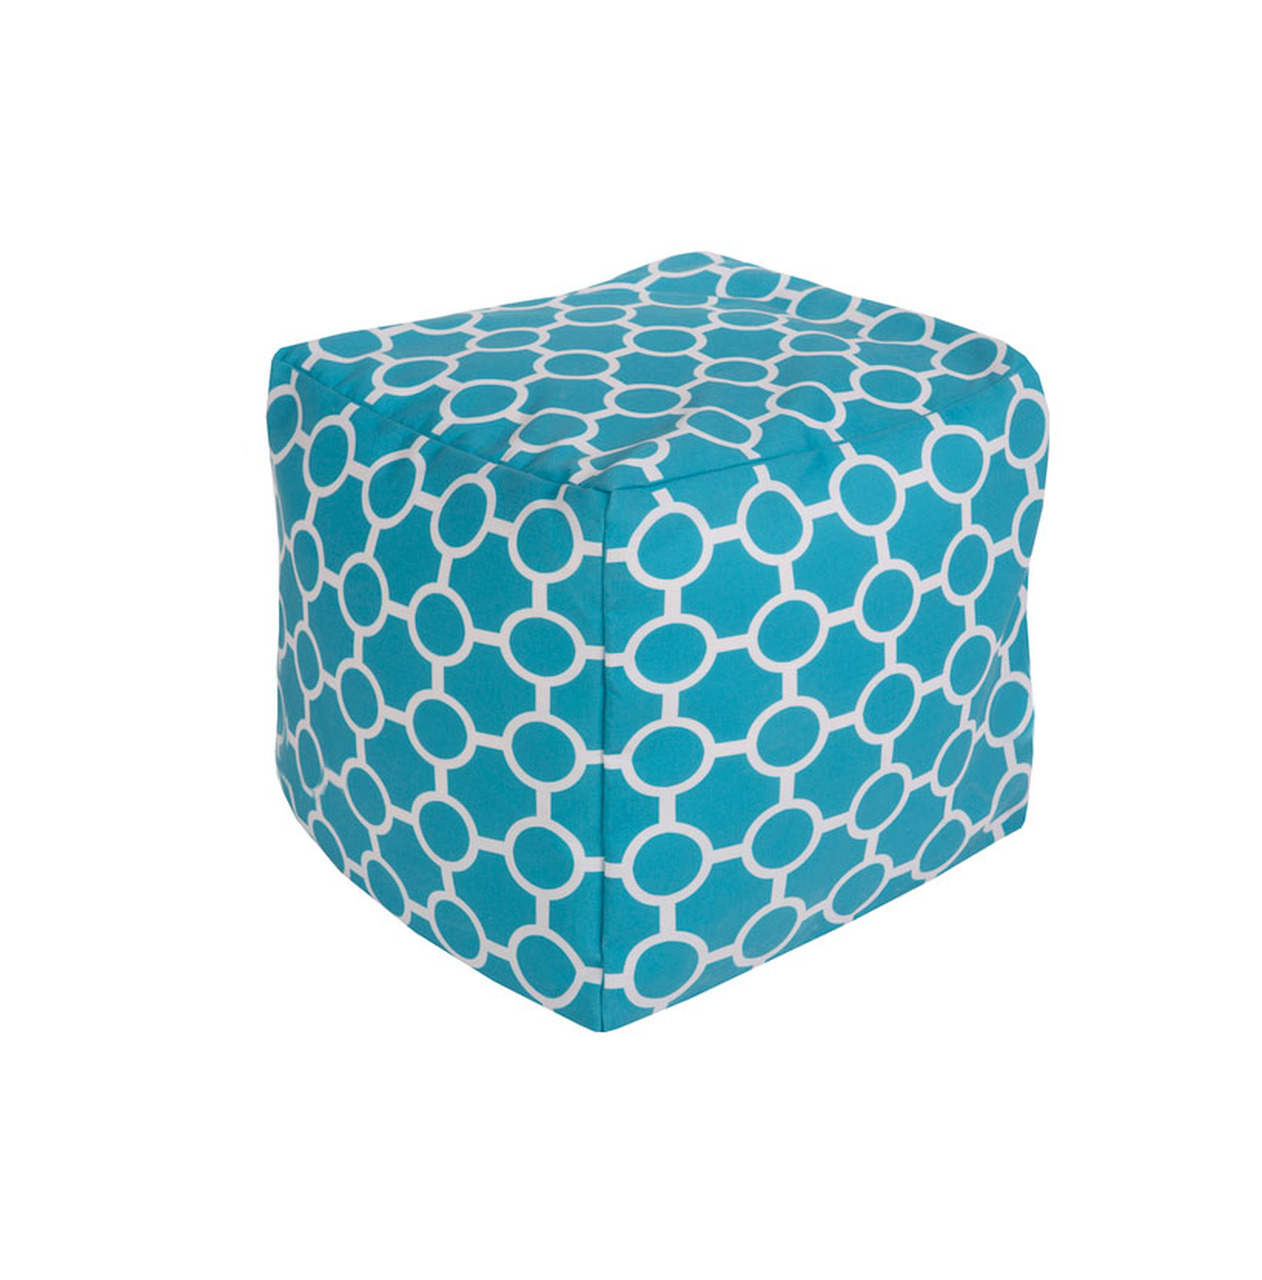 Pleasing 18 Sky Blue And Ivory Gated Spheres Square Outdoor Patio Pouf Ottoman 31087578 Machost Co Dining Chair Design Ideas Machostcouk